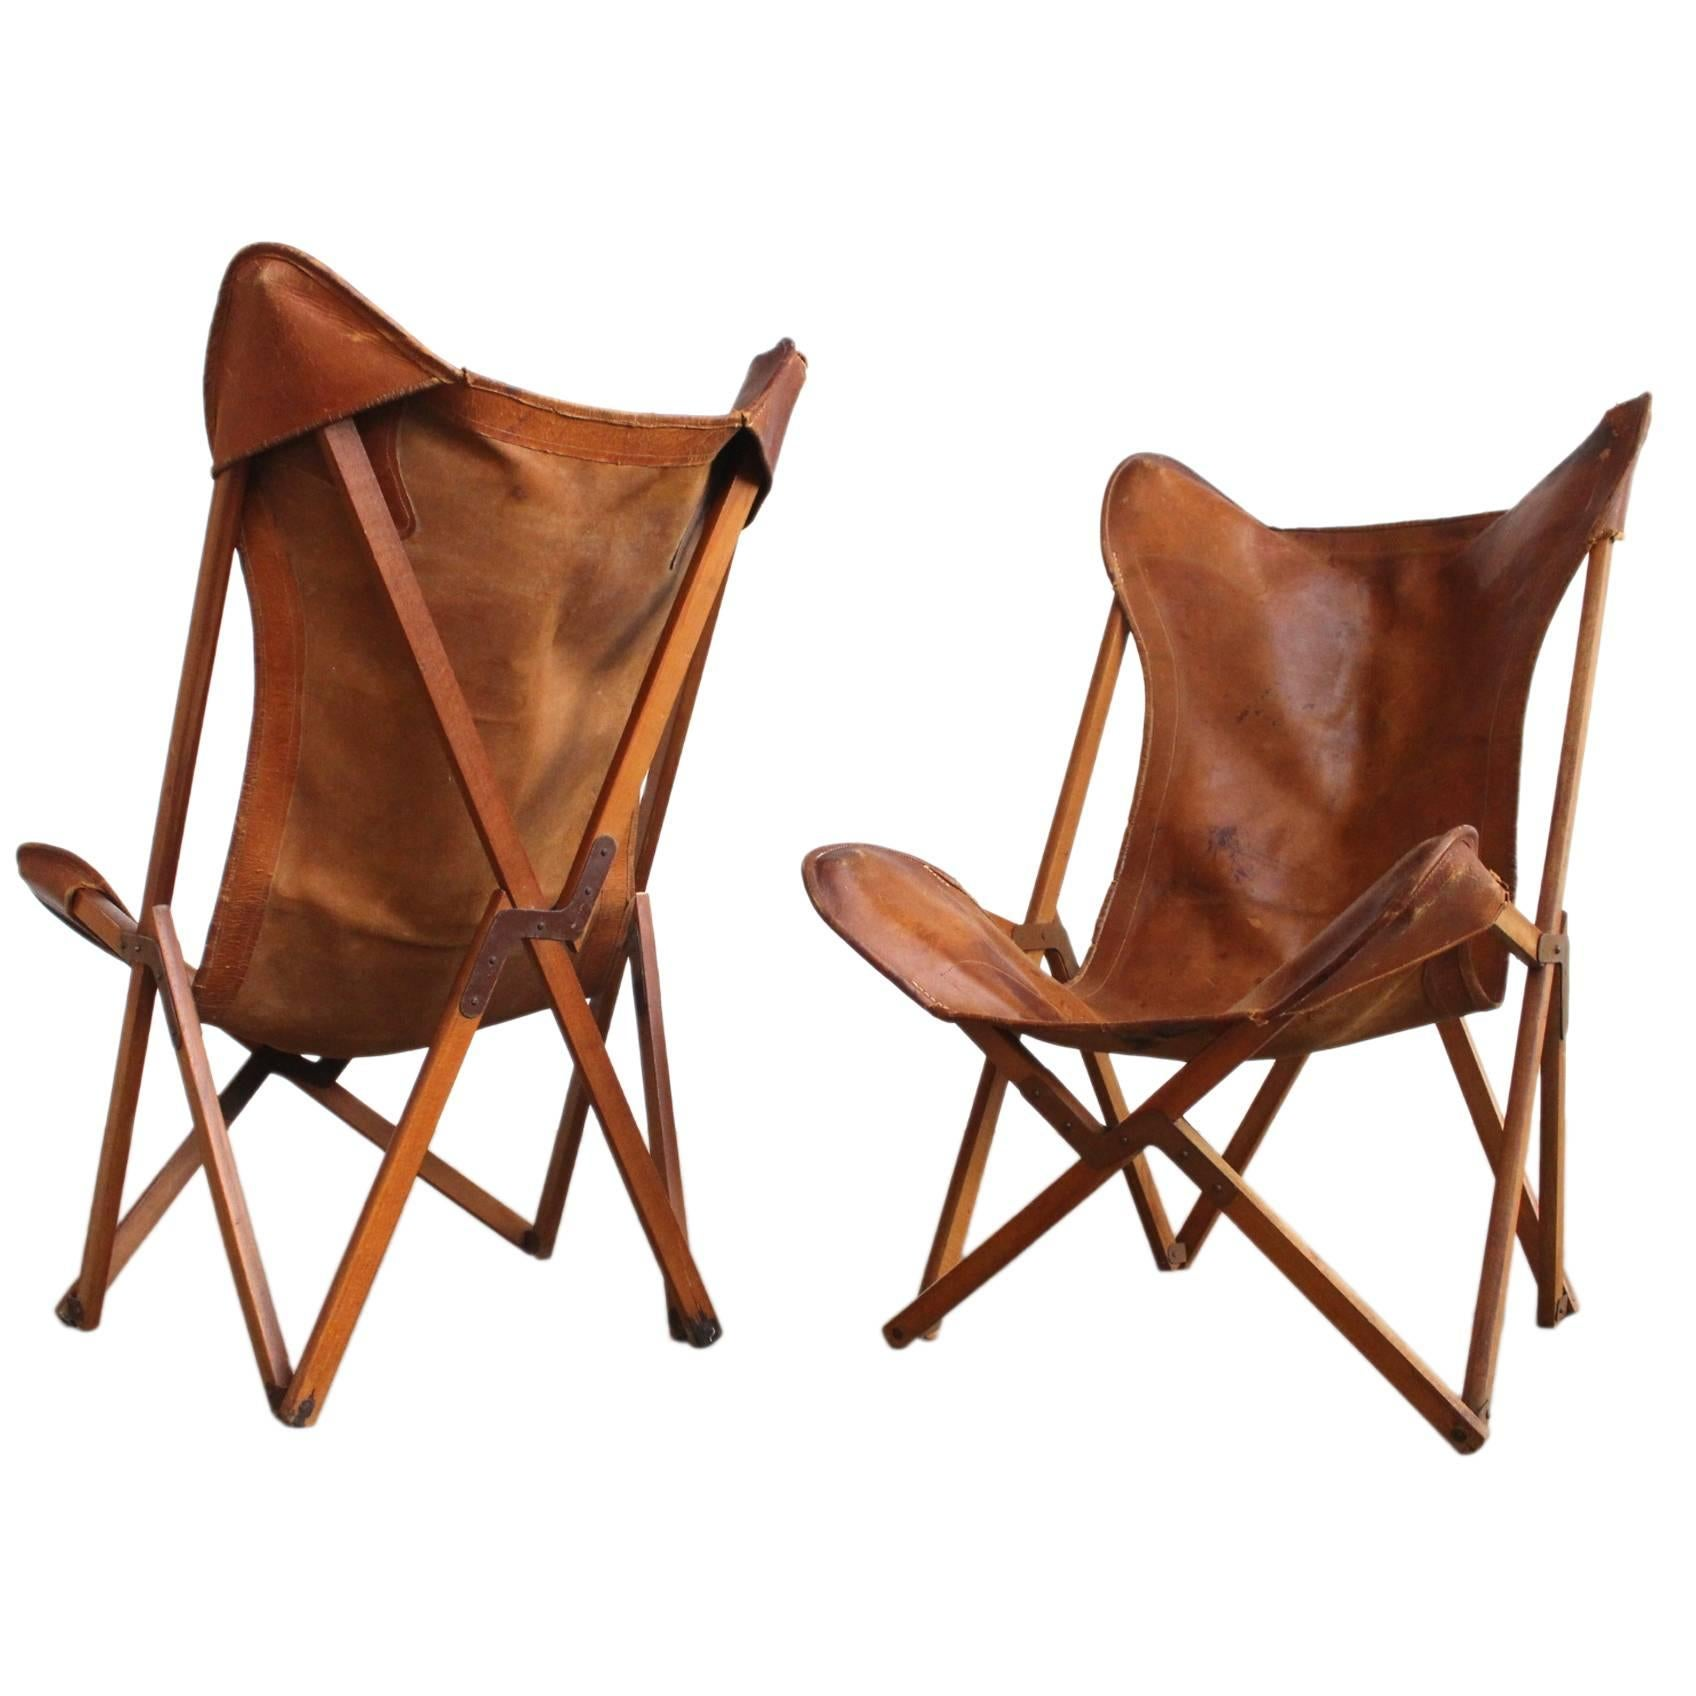 Very Rare Original 'Tripolina' Chairs by Joseph Fendy for Paolo Viganò, Signed